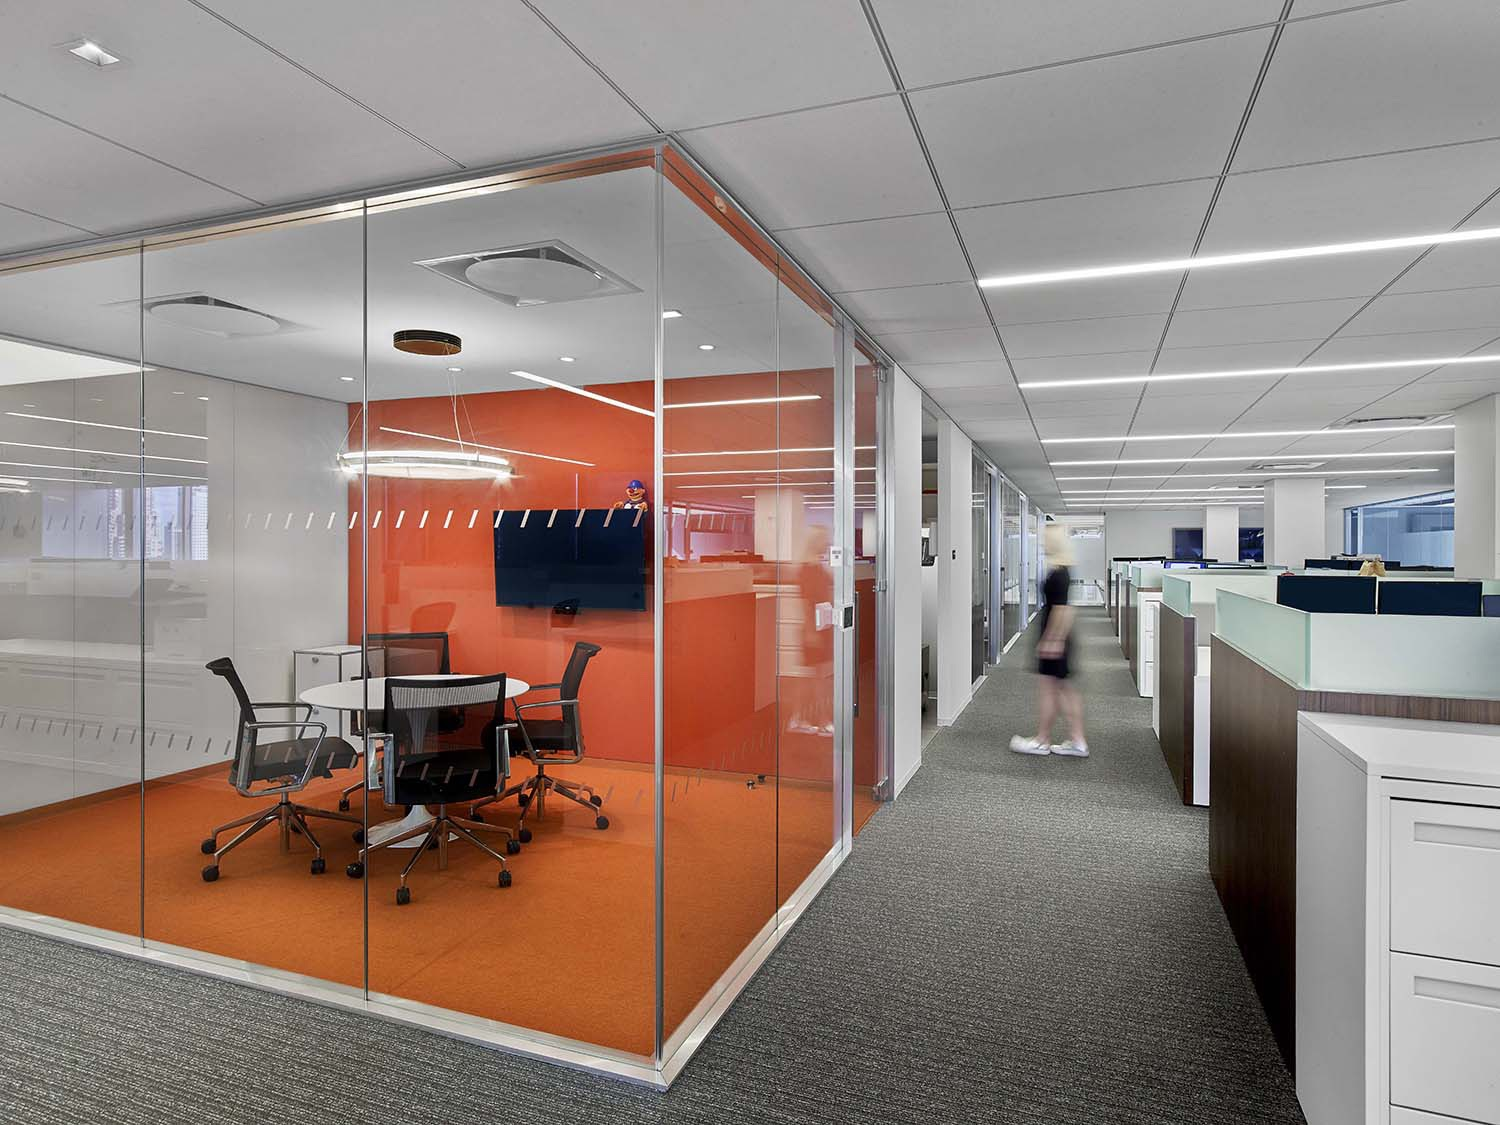 assured-guaranty-office-12